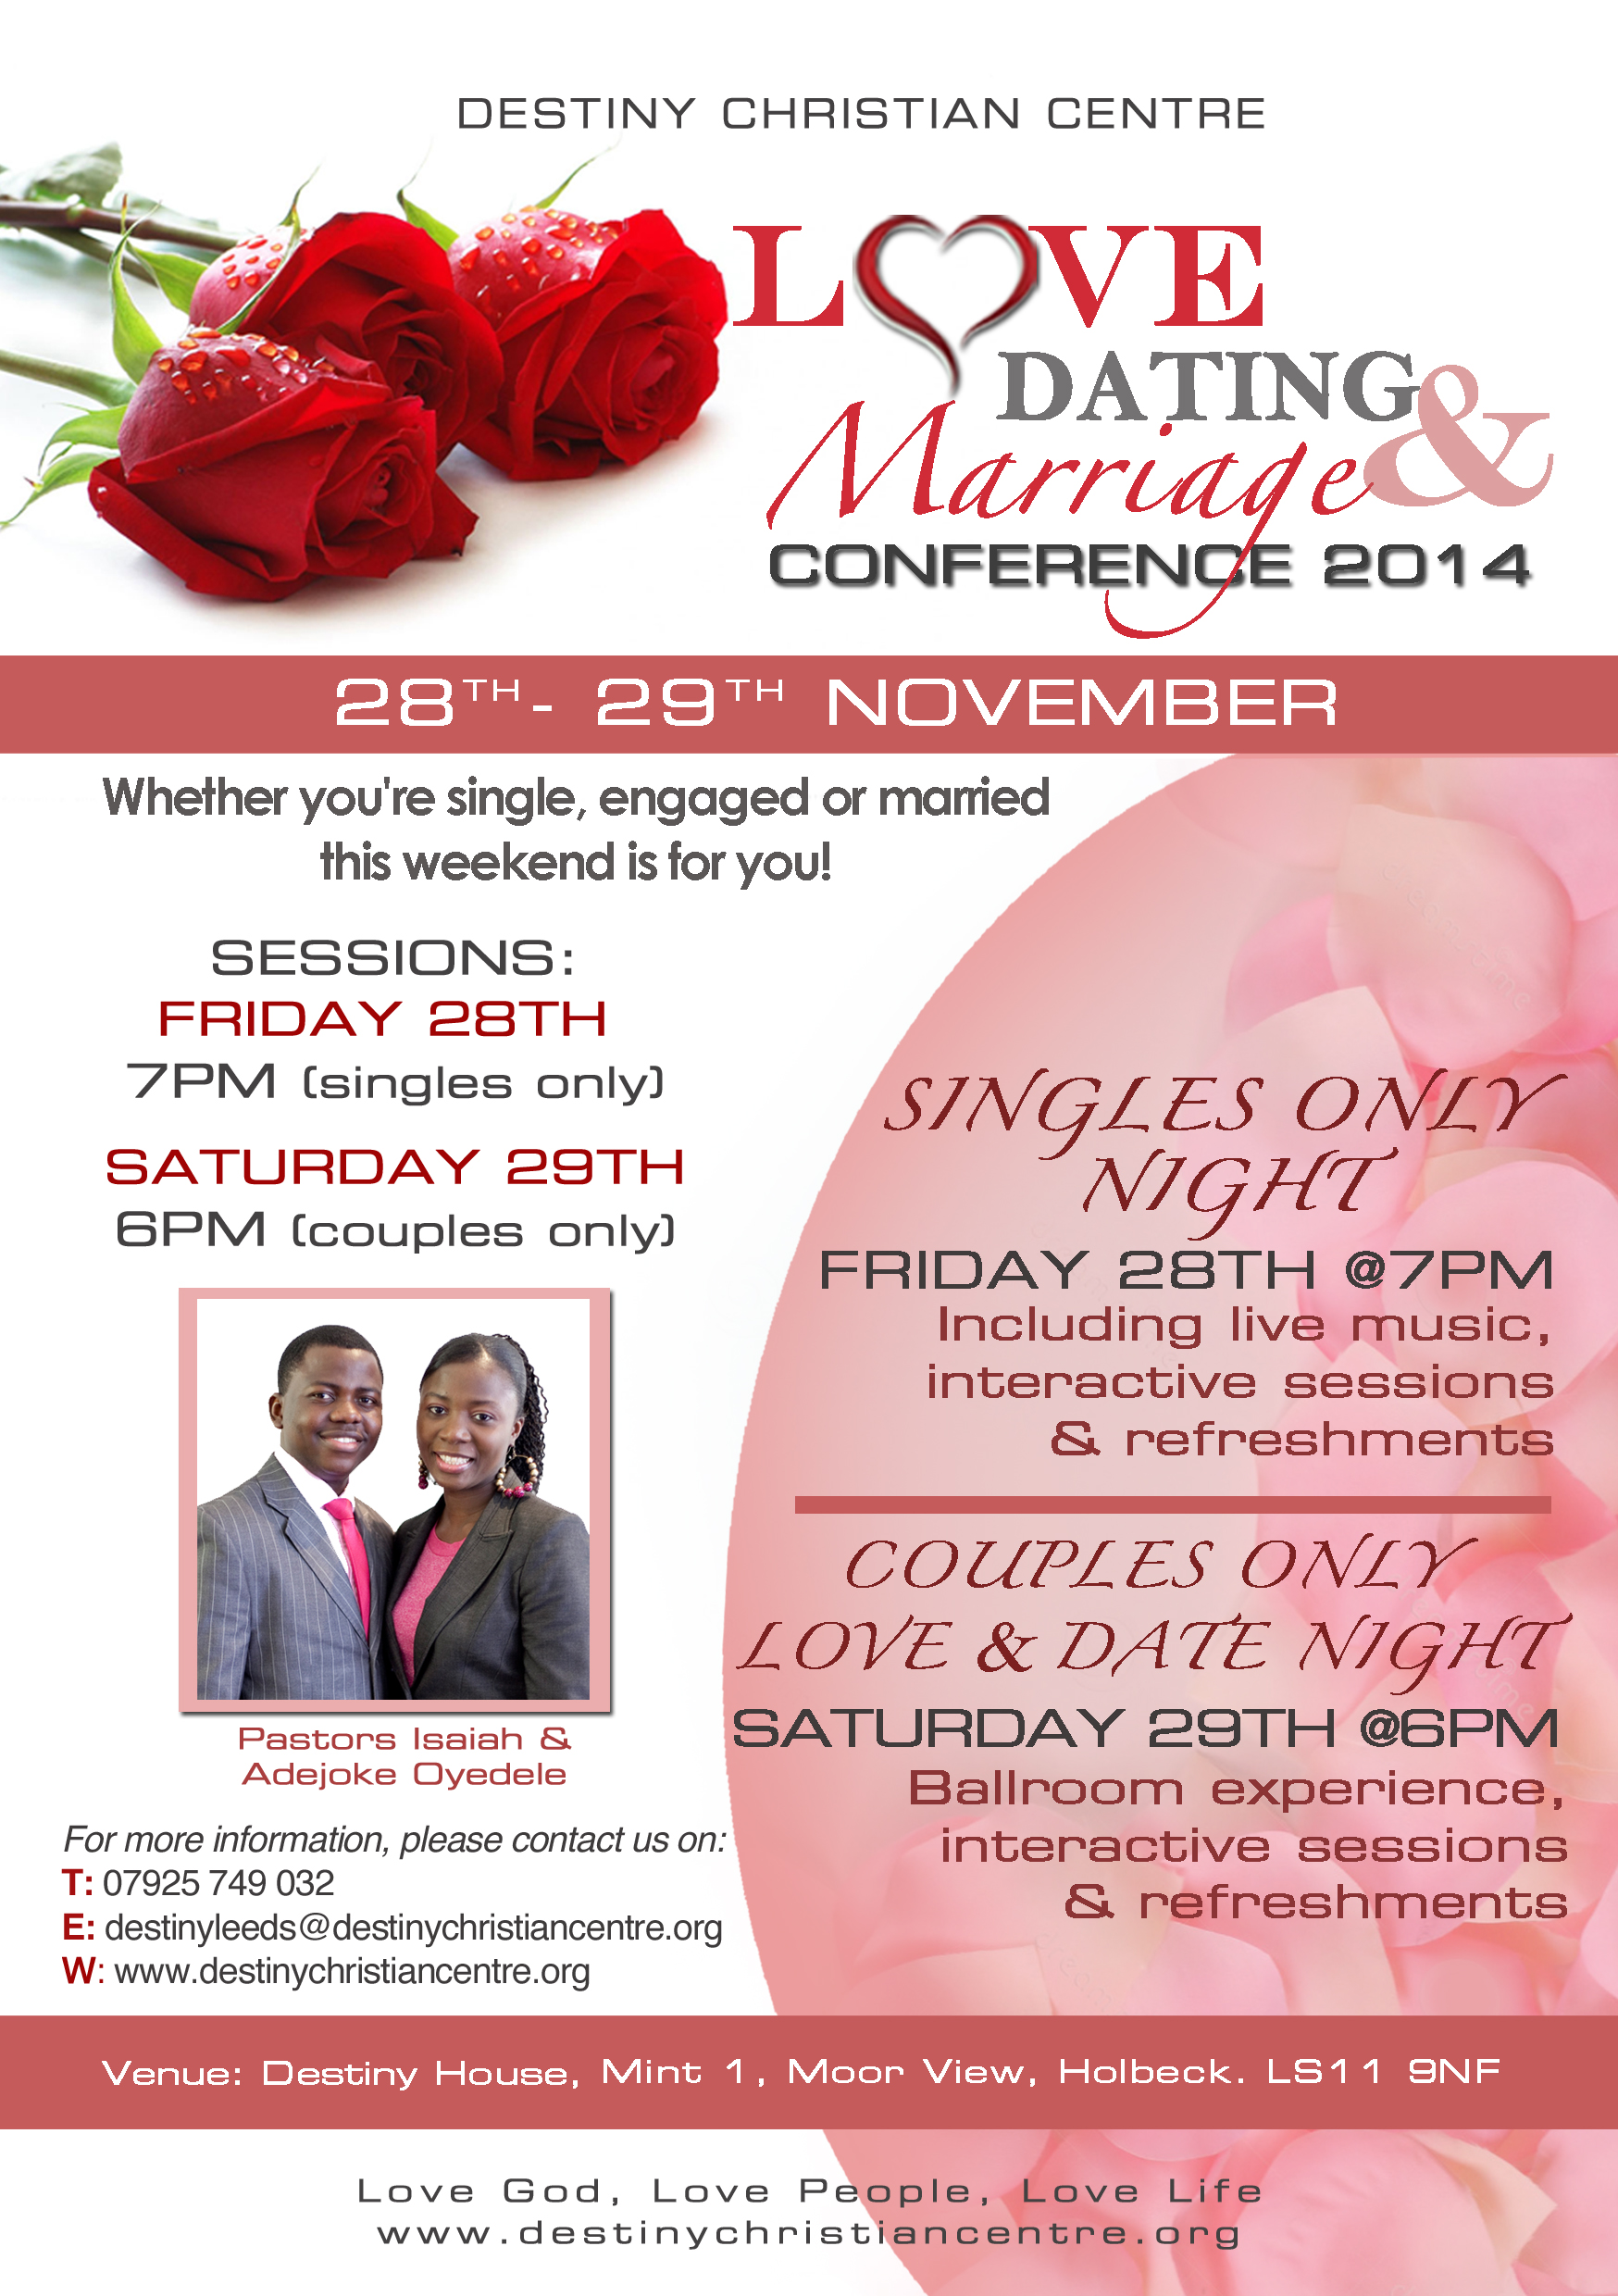 Christian dating seminars flyers